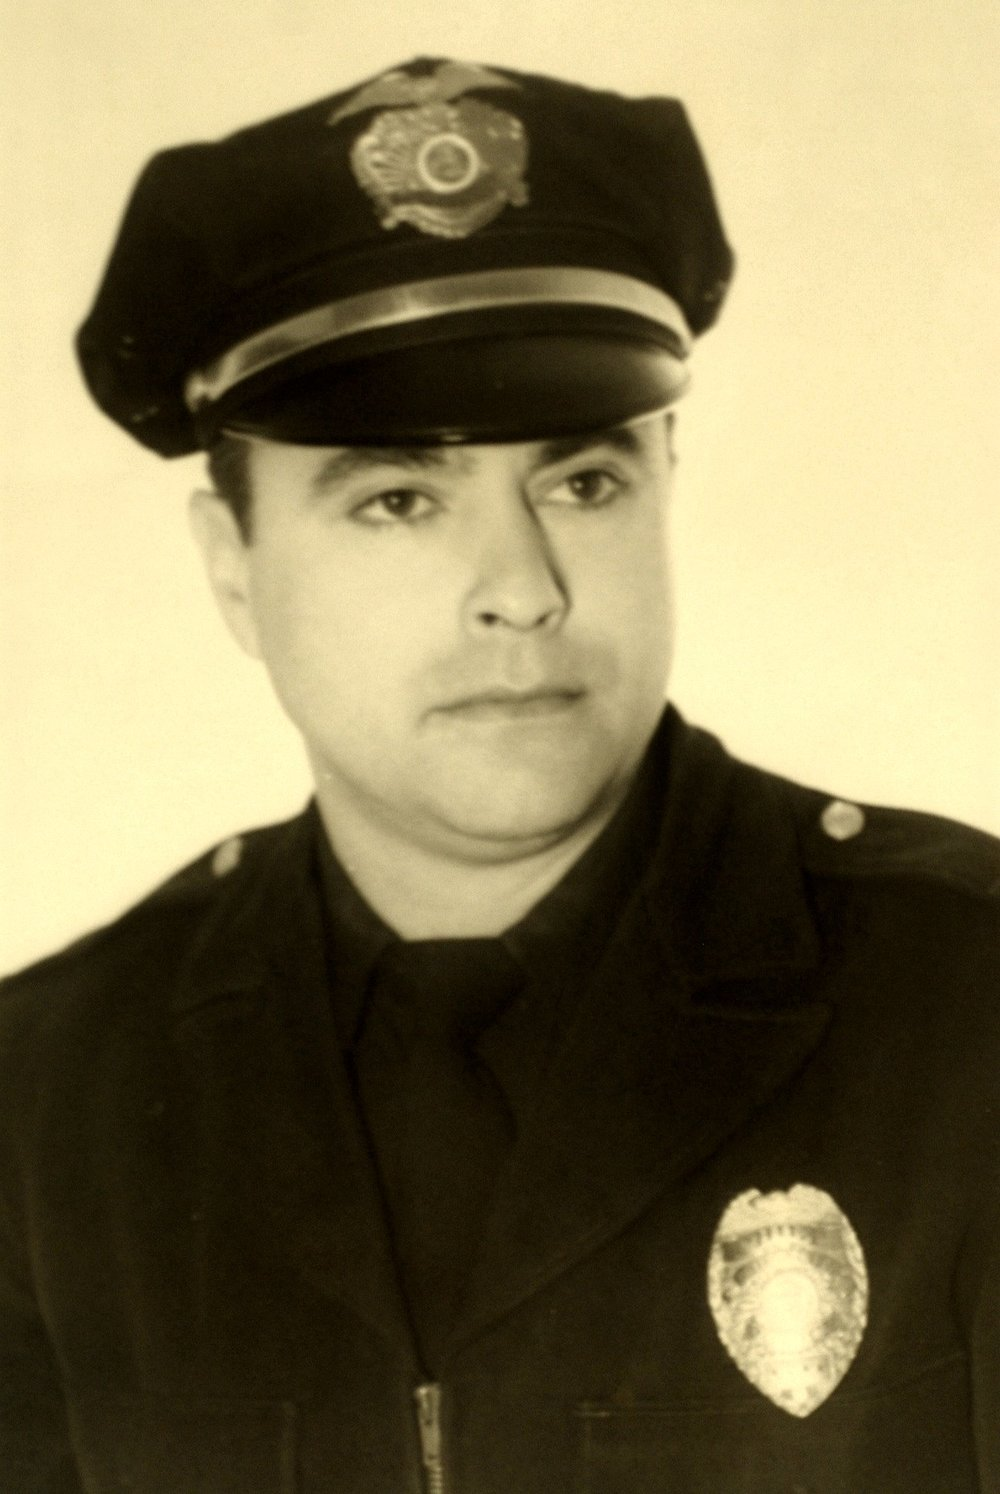 Louis Mountanos when he was police chief of Sausalito Photo courtesy of Sausalito Historical Society